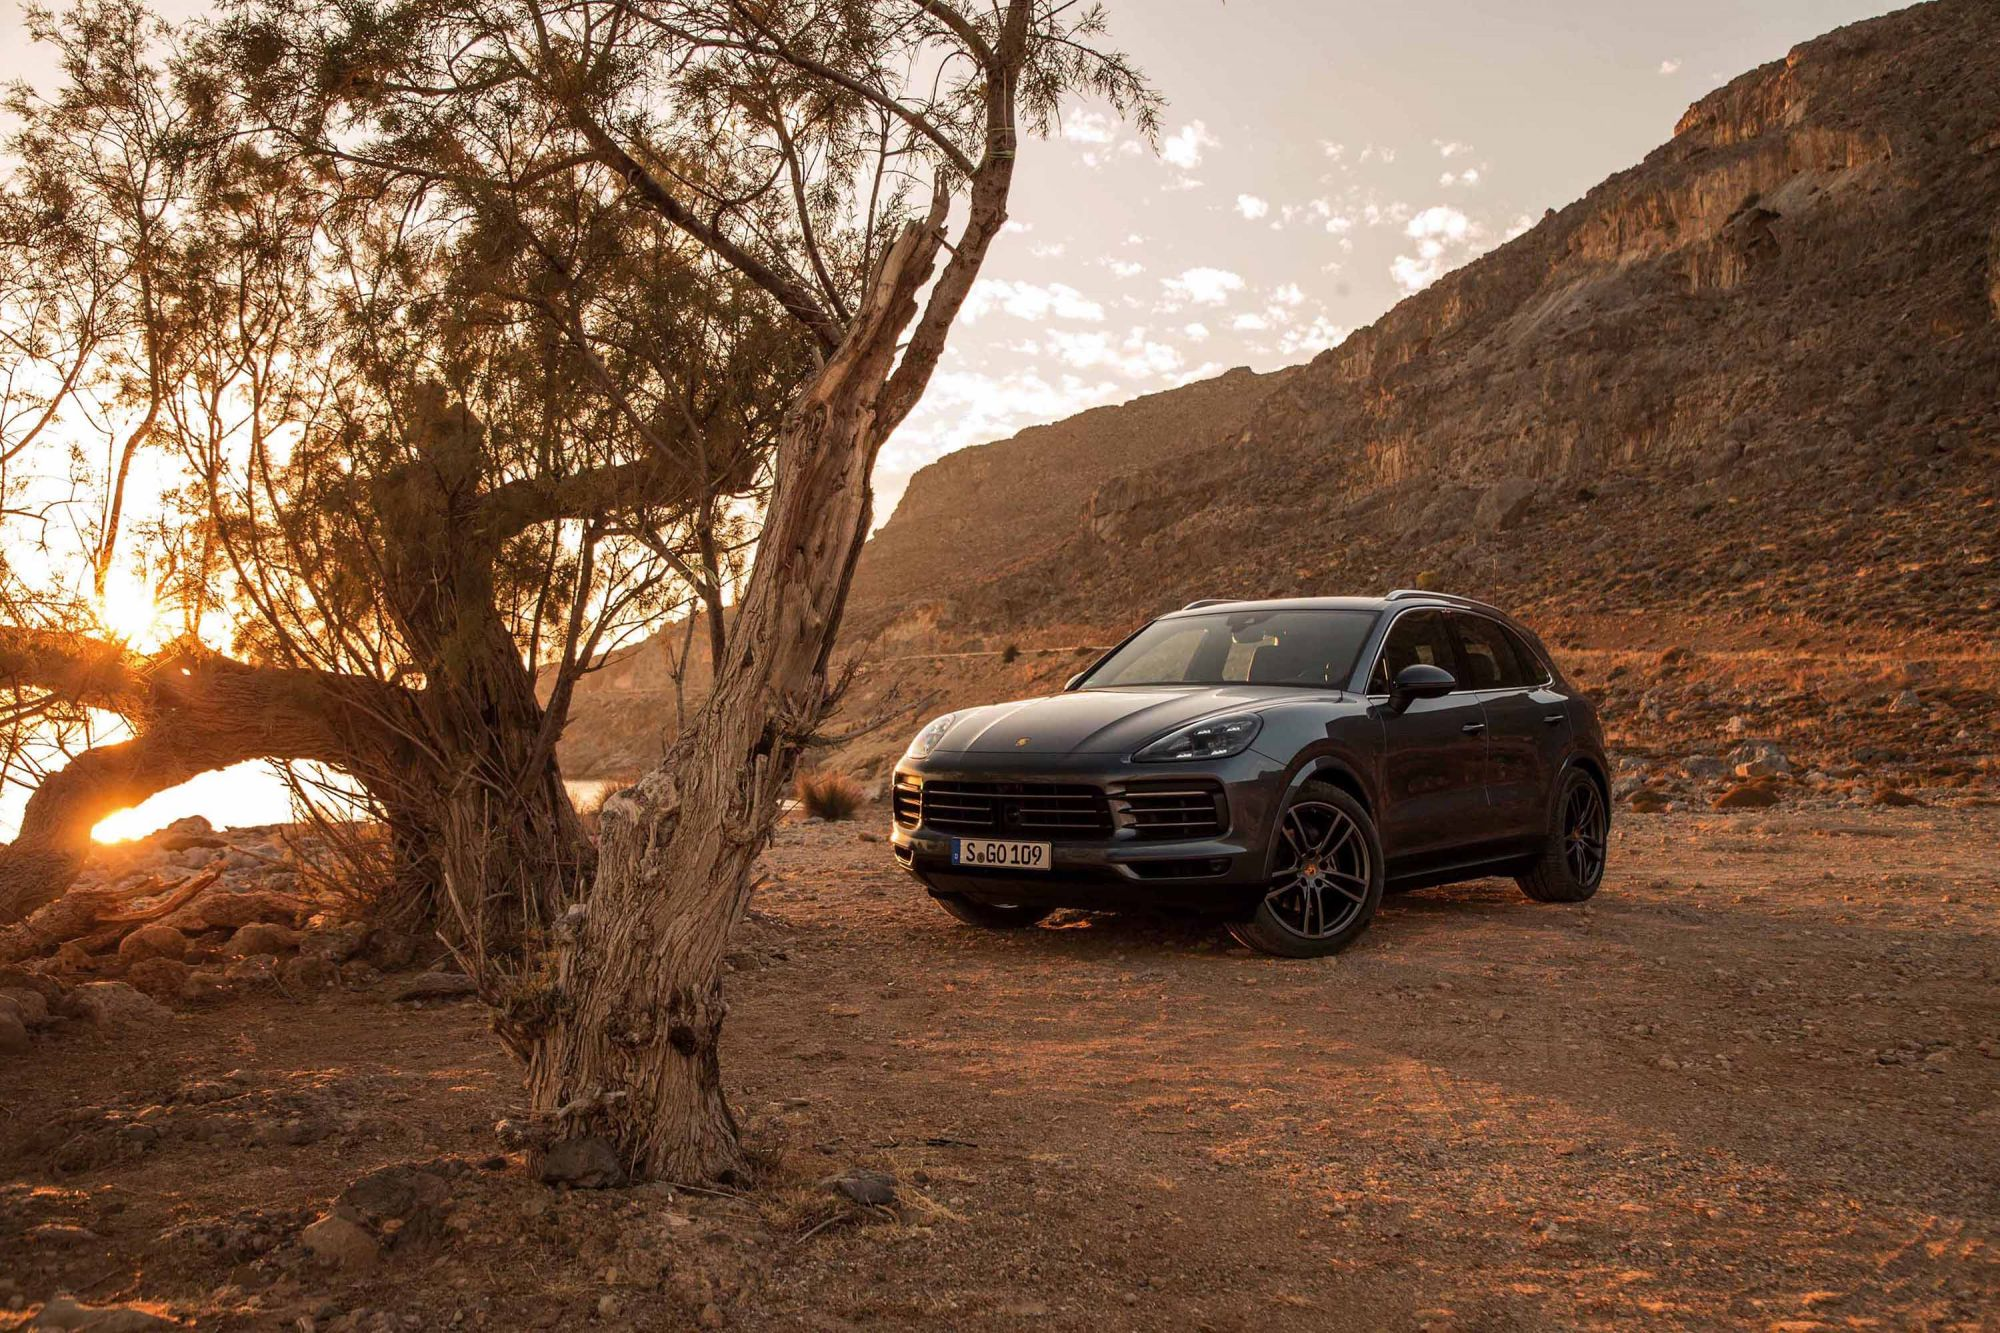 Porsche's Third-Generation Cayenne SUV Is A Surprisingly Apt Off-Road Drive